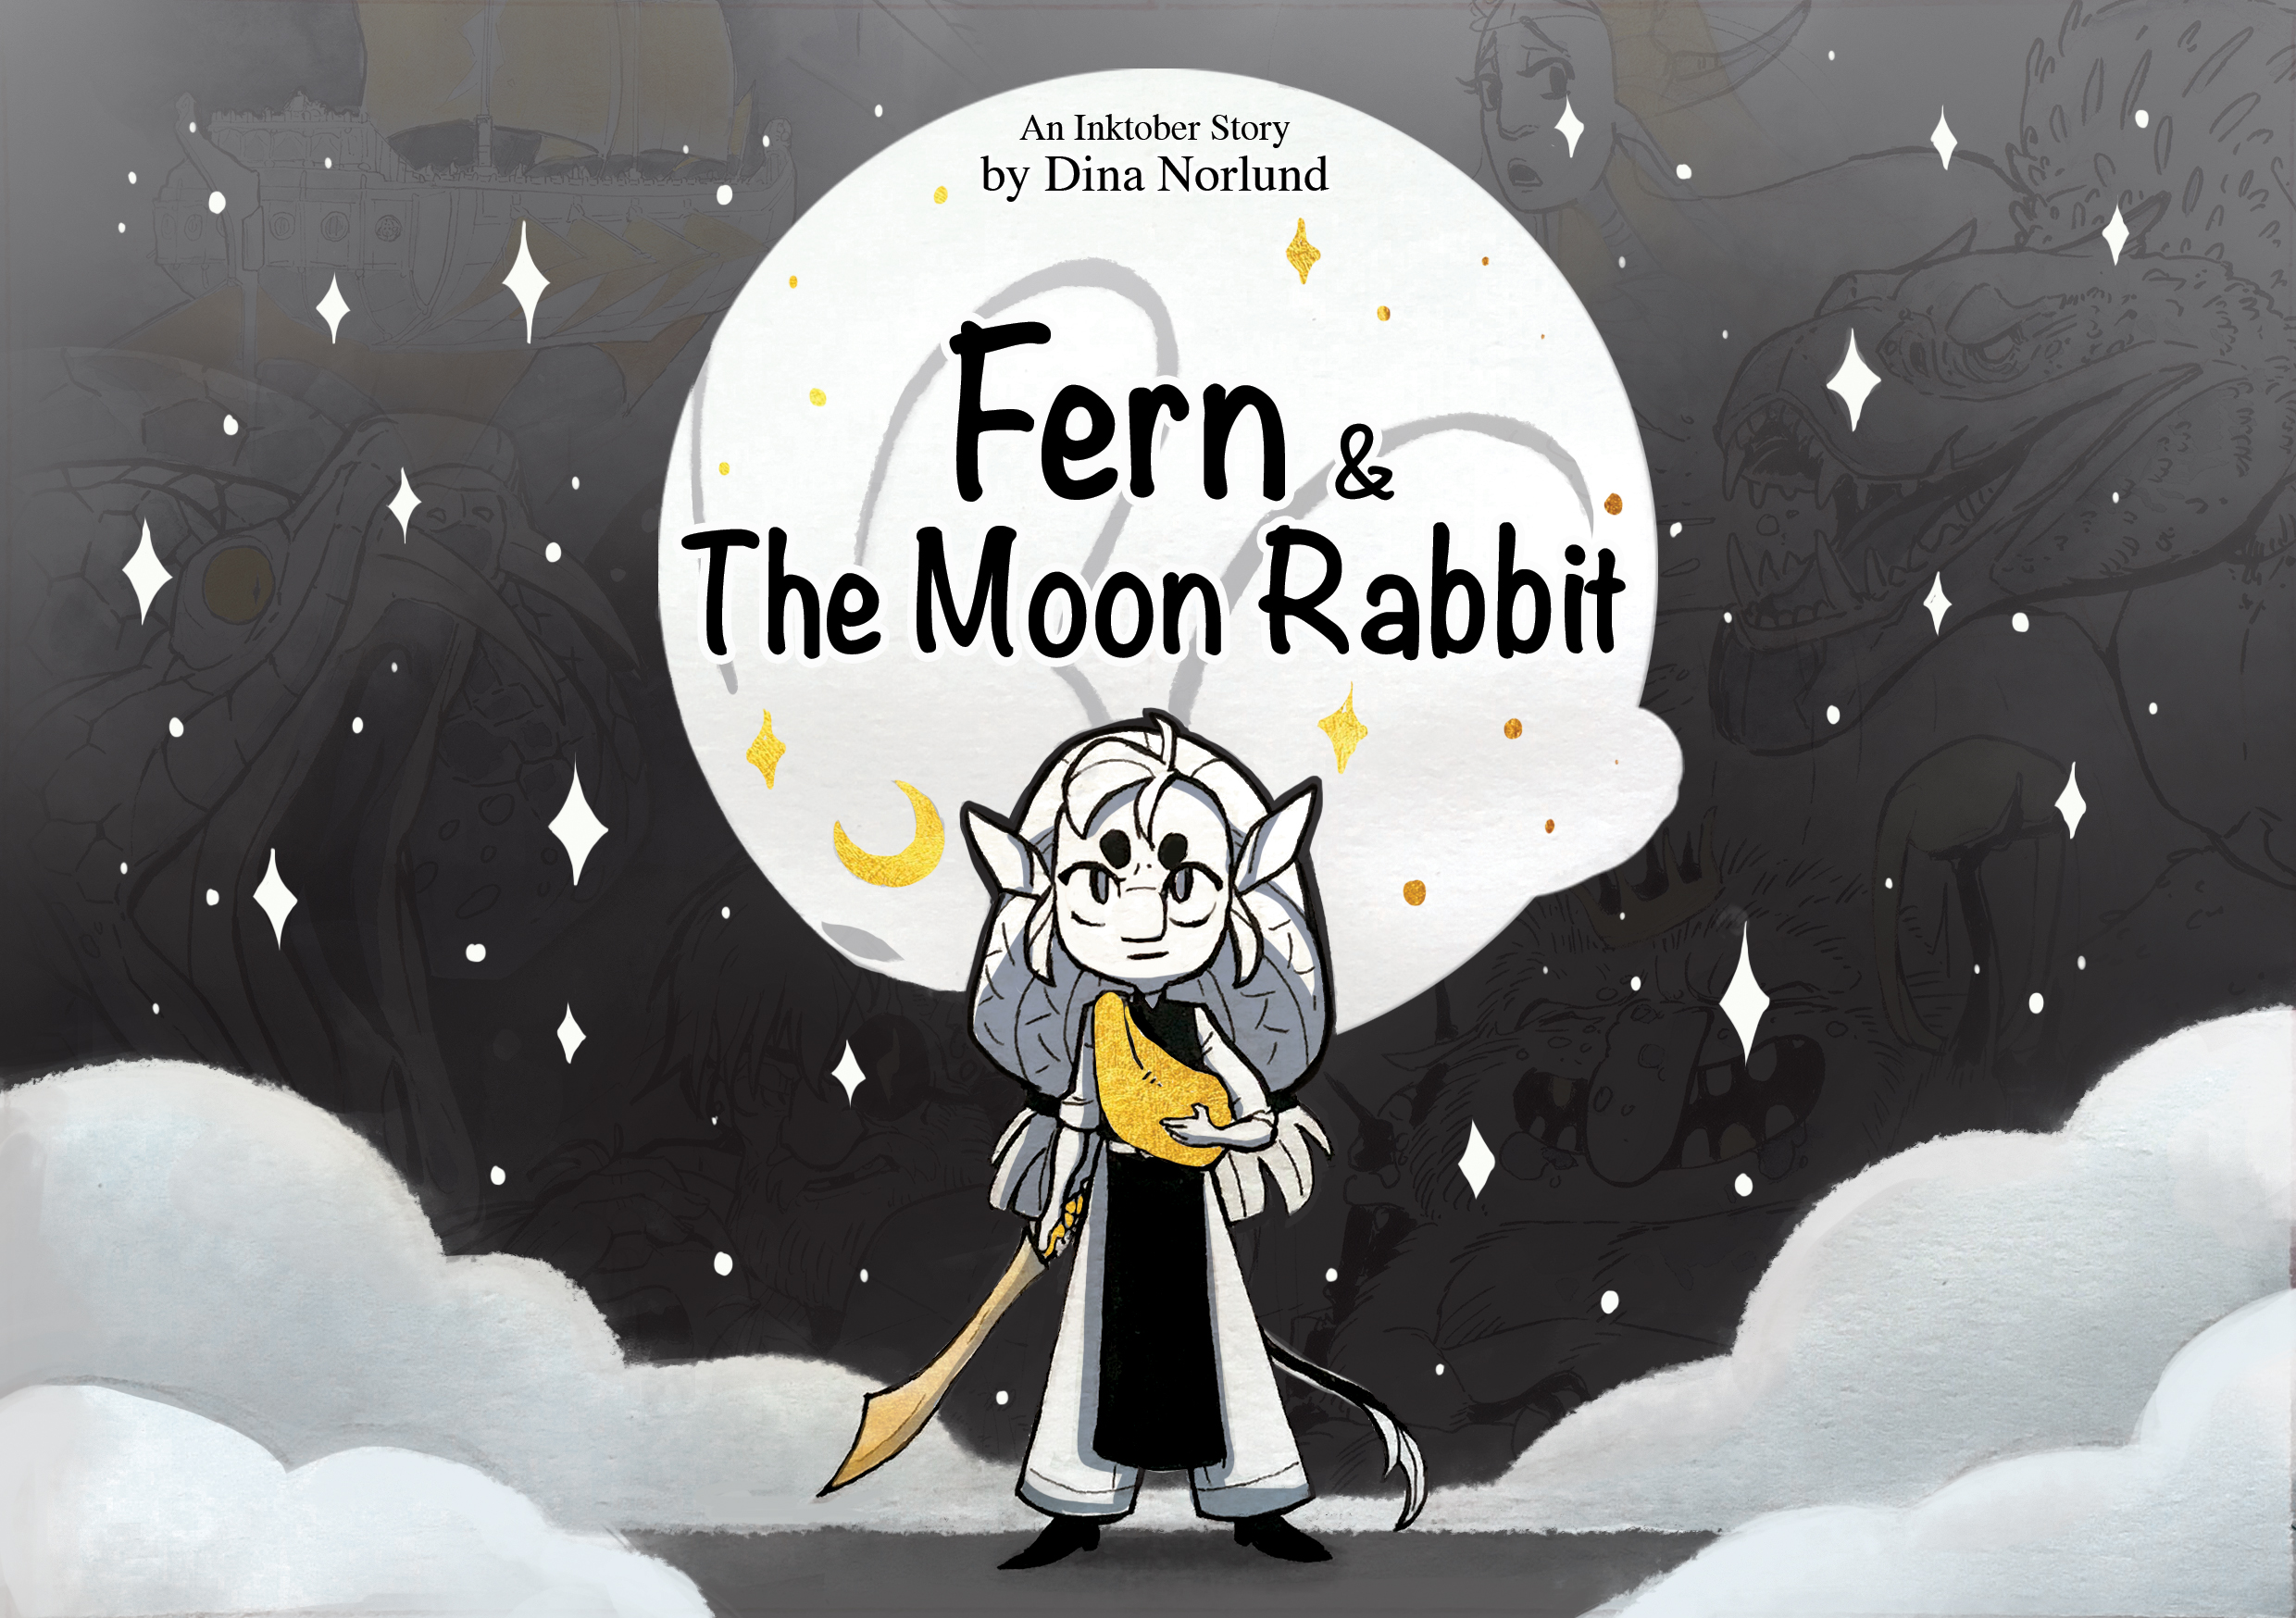 FERN & The moon rabbit - This is a small, unpolished story about a young troll named Fern and her mysterious quest to return the moon to the night sky.